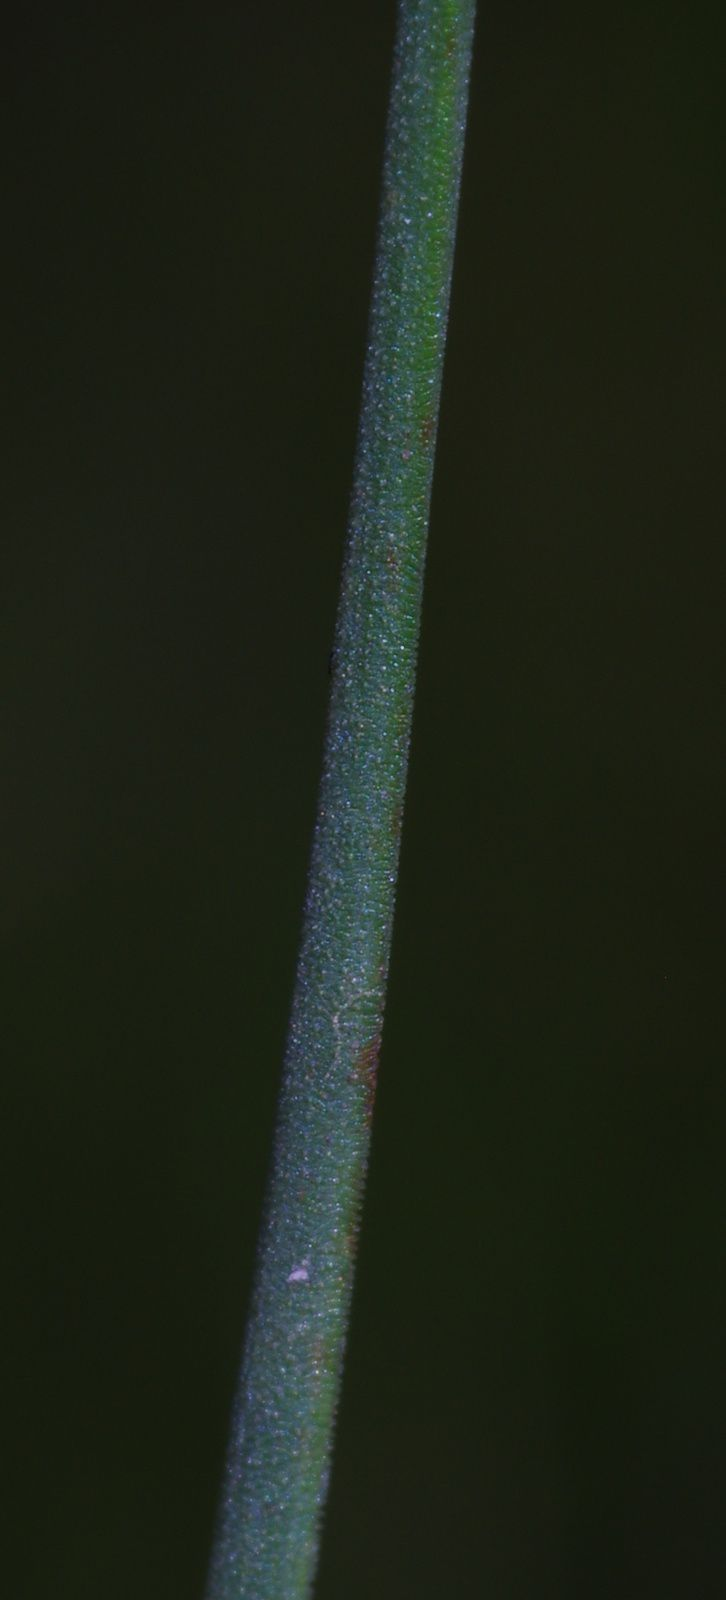 Xyris savanensis